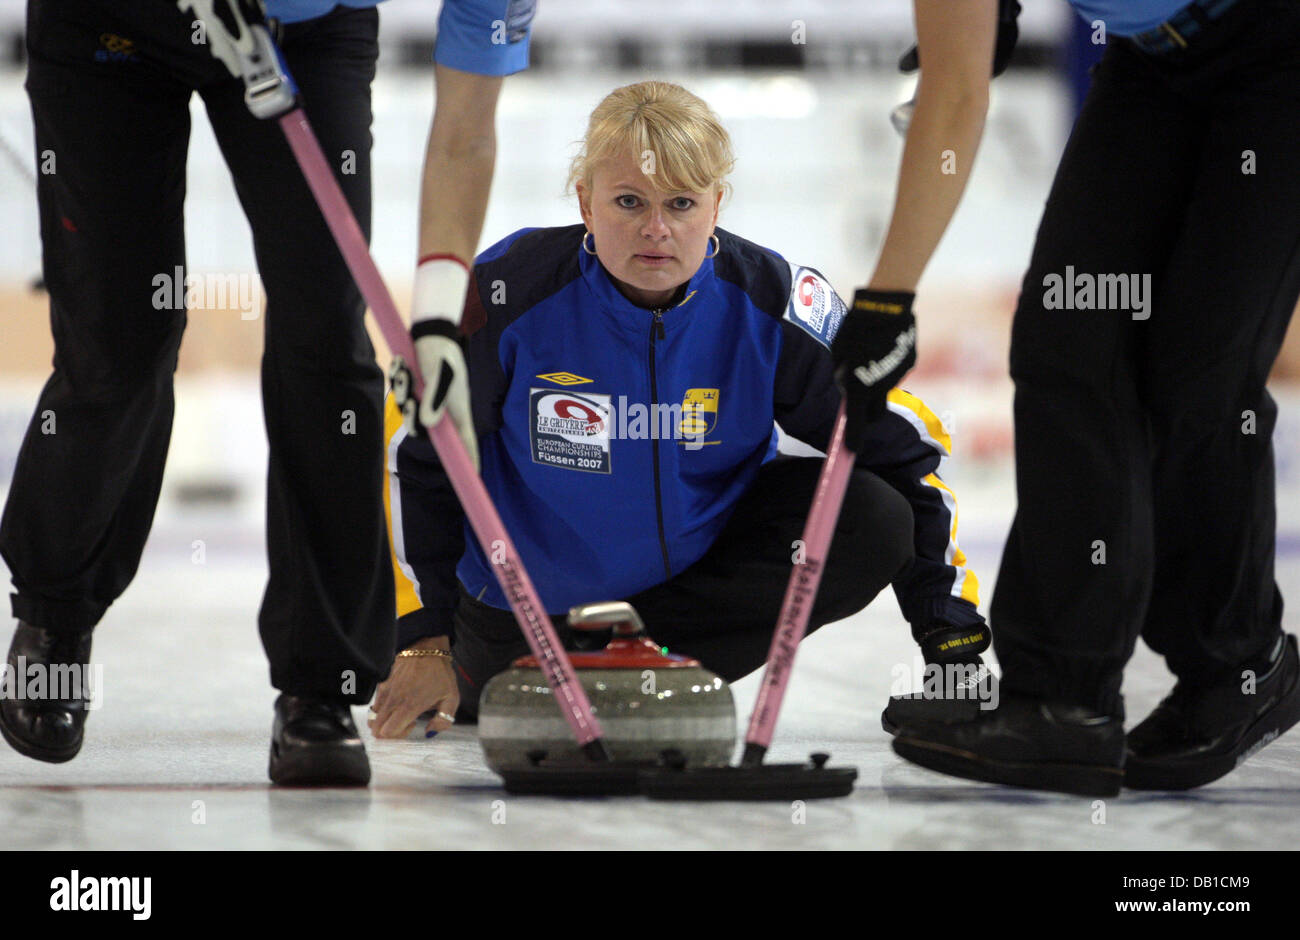 Anette Norberg anette norberg of the swedish national women's curling team